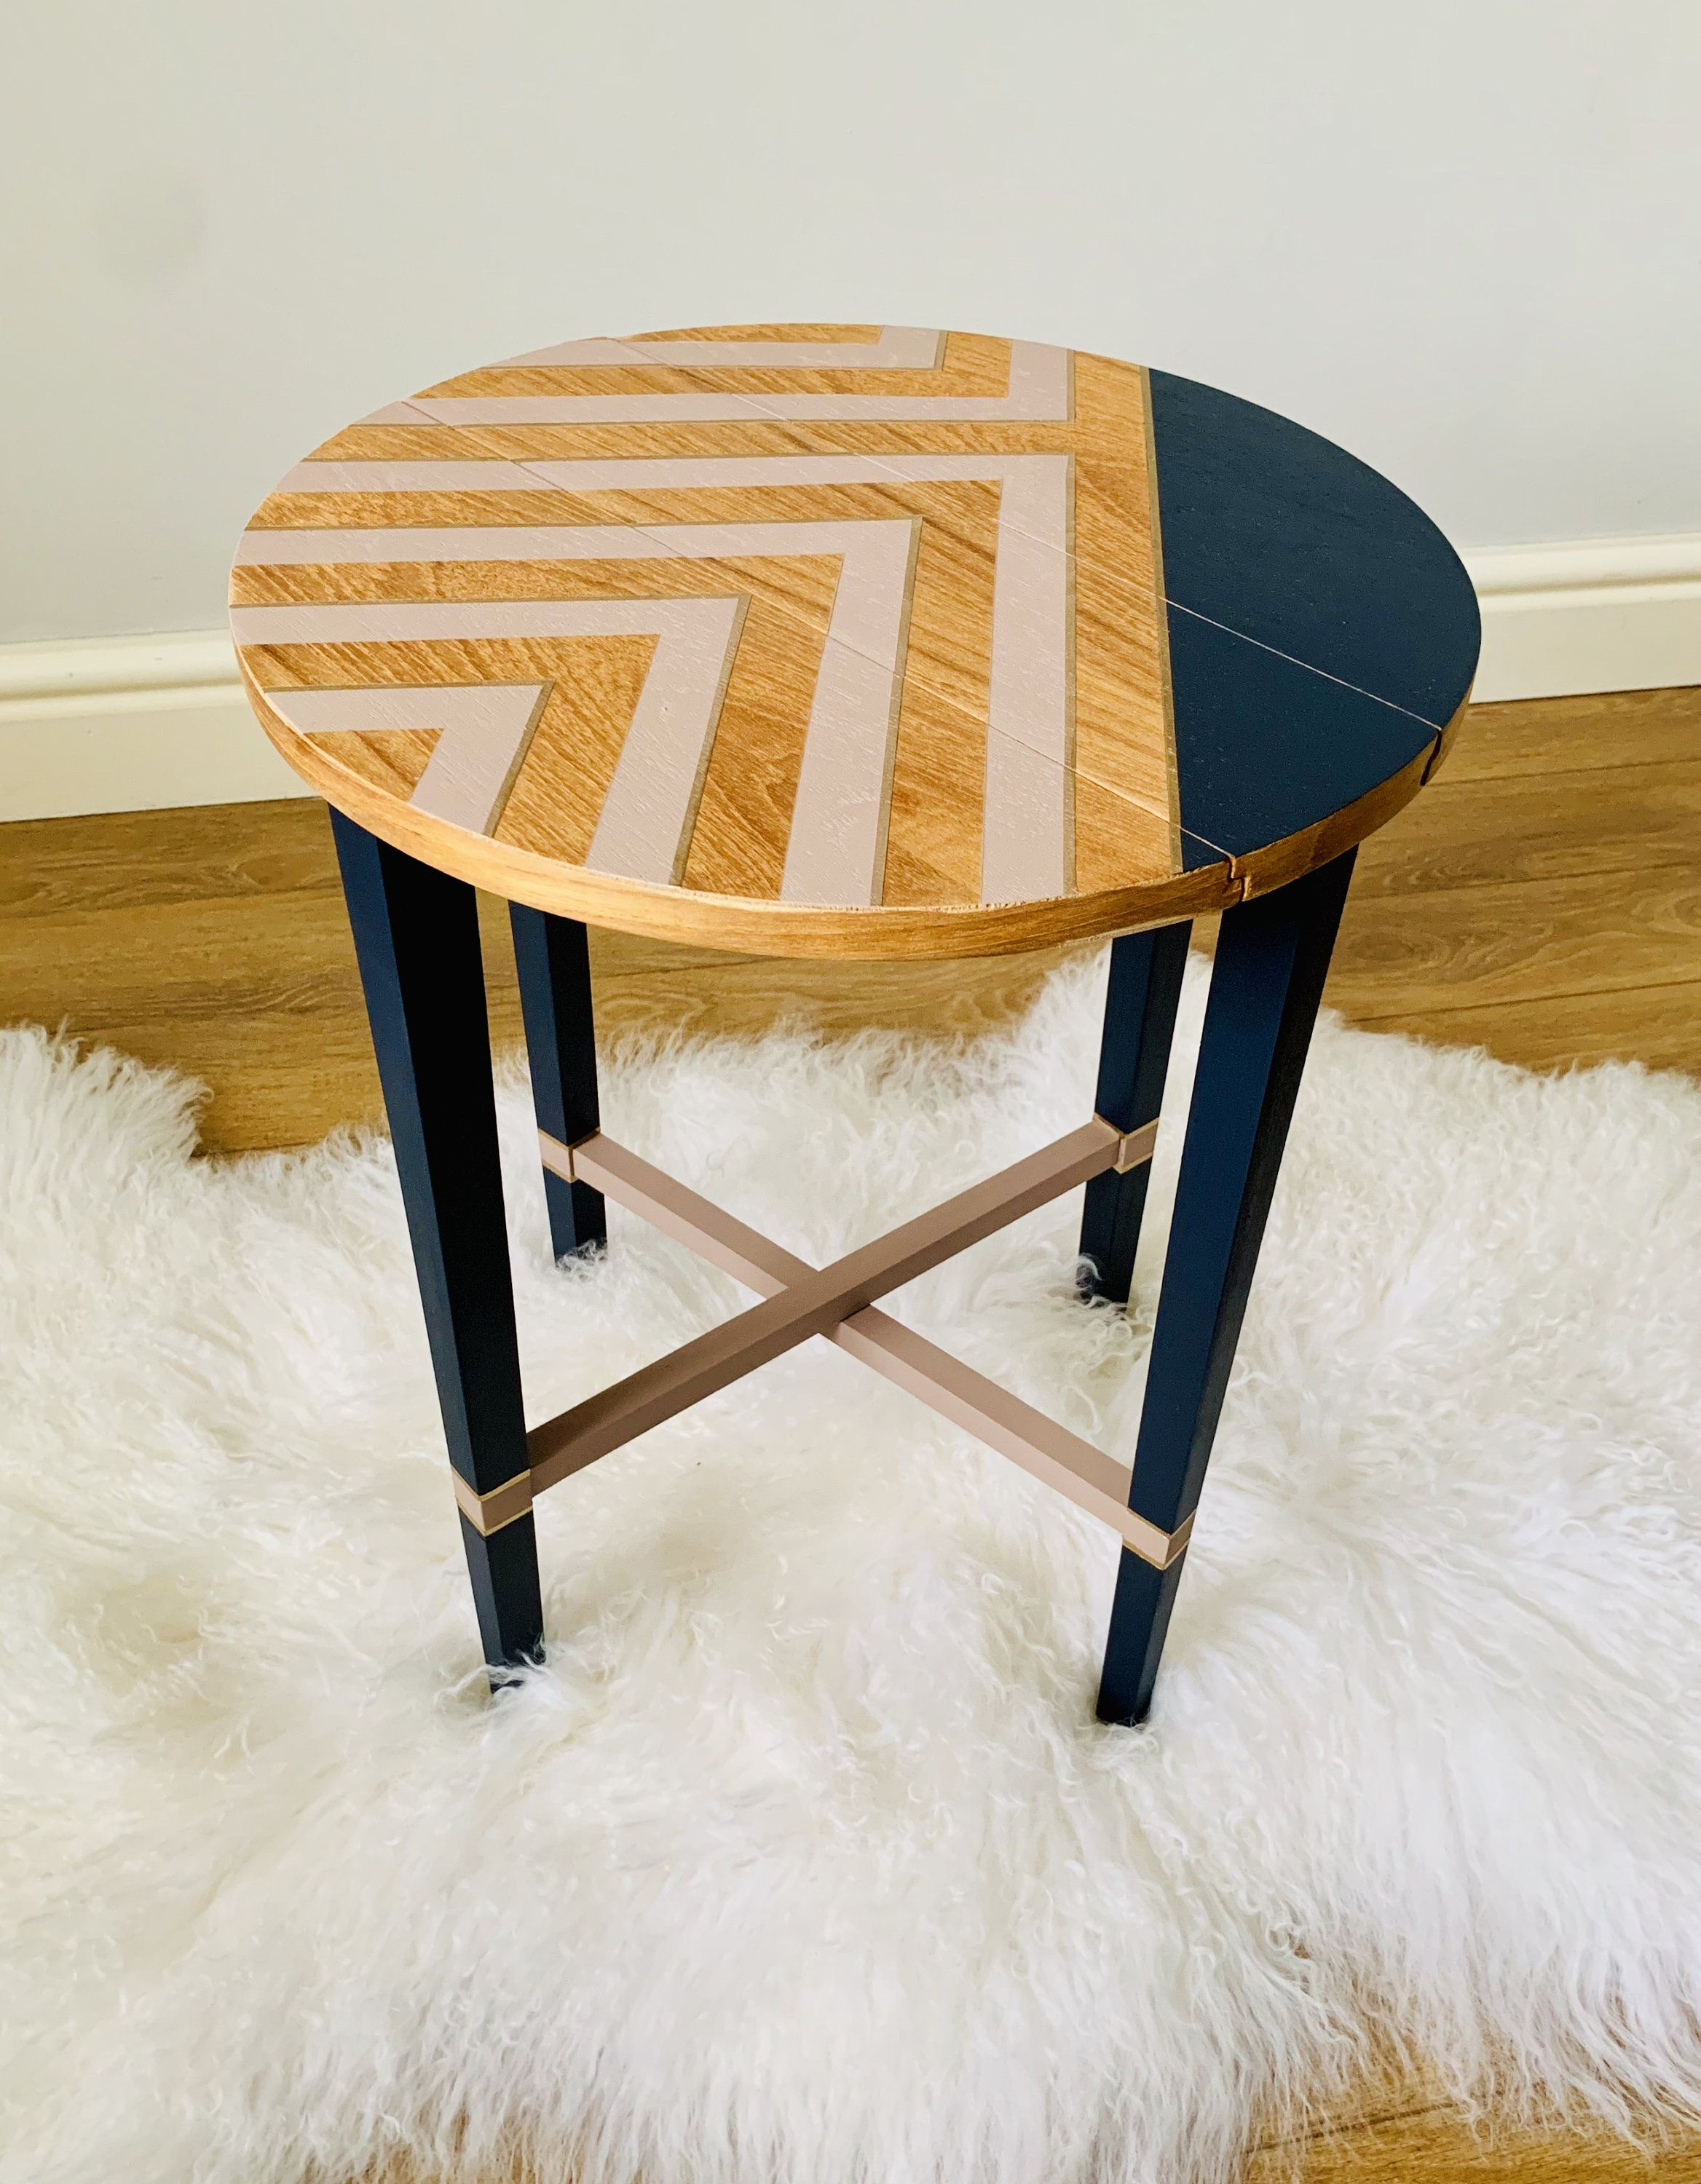 Mid Century Side Table Coffee End Table Bedside Tables Lamp Table Painted Retro Geometric Pattern Folding Side Table Pink Navy Gold In 2020 Painted Coffee Tables Painted Table Mid Century Side Table